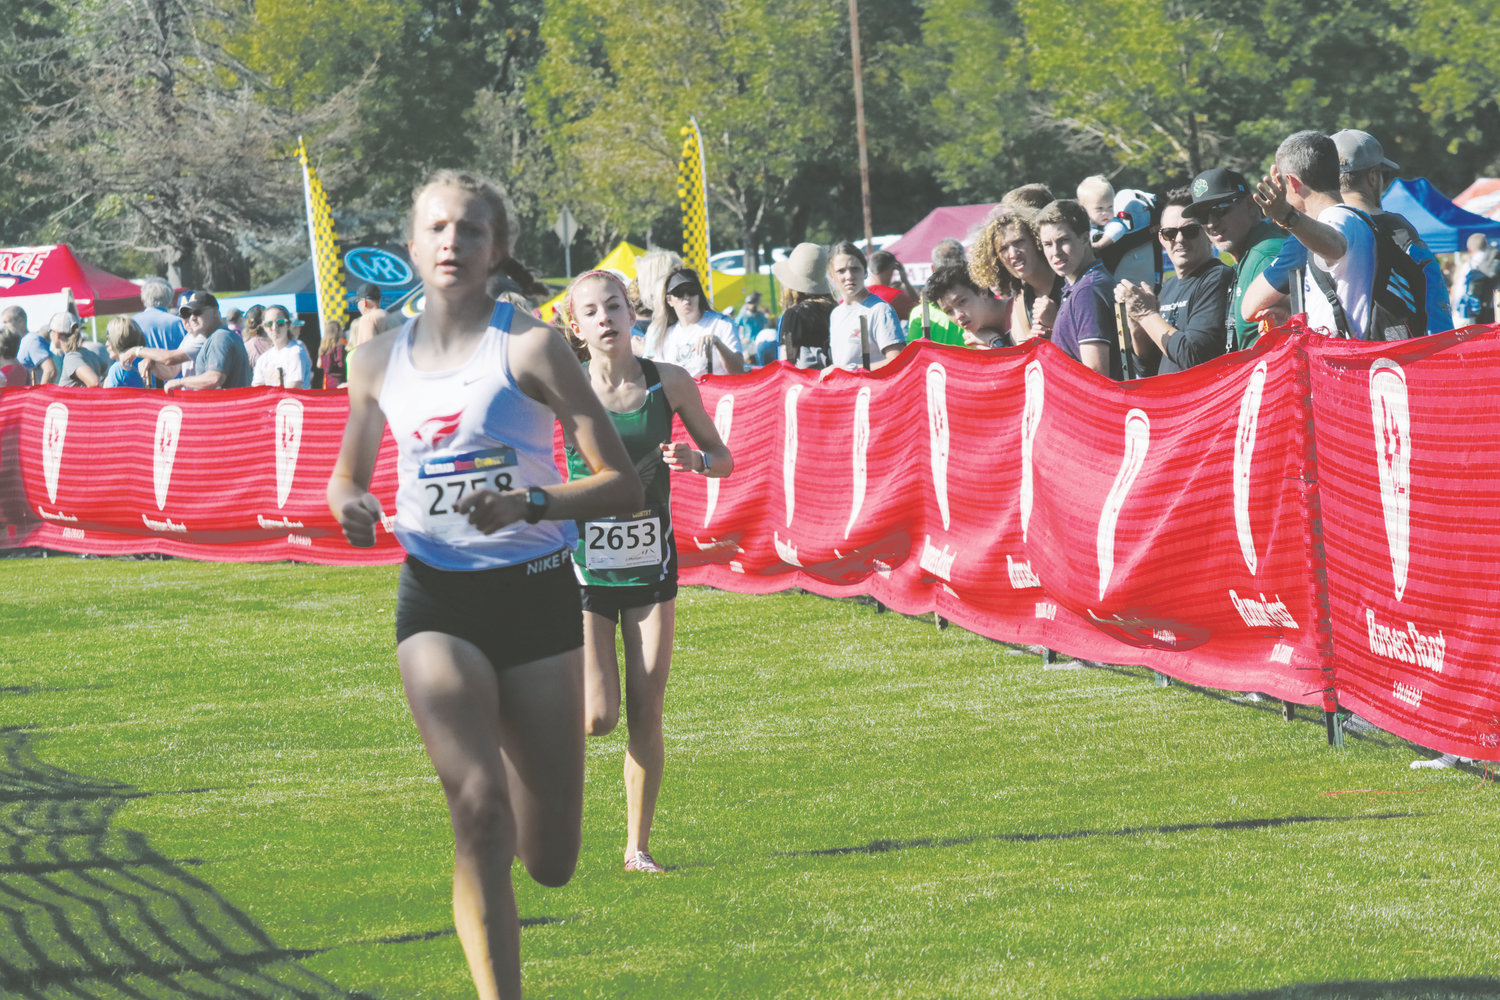 Ashten Loeks, 2558, heads for the finish line as the first Elizabeth runner in the field at the Sept. 21 Dave Sanders Memorial Cross Country Meet held at Clement Park. Loeks finished fourth and the Cardinal girls finished fifth in the team standings among the 26 teams running in Division 2.